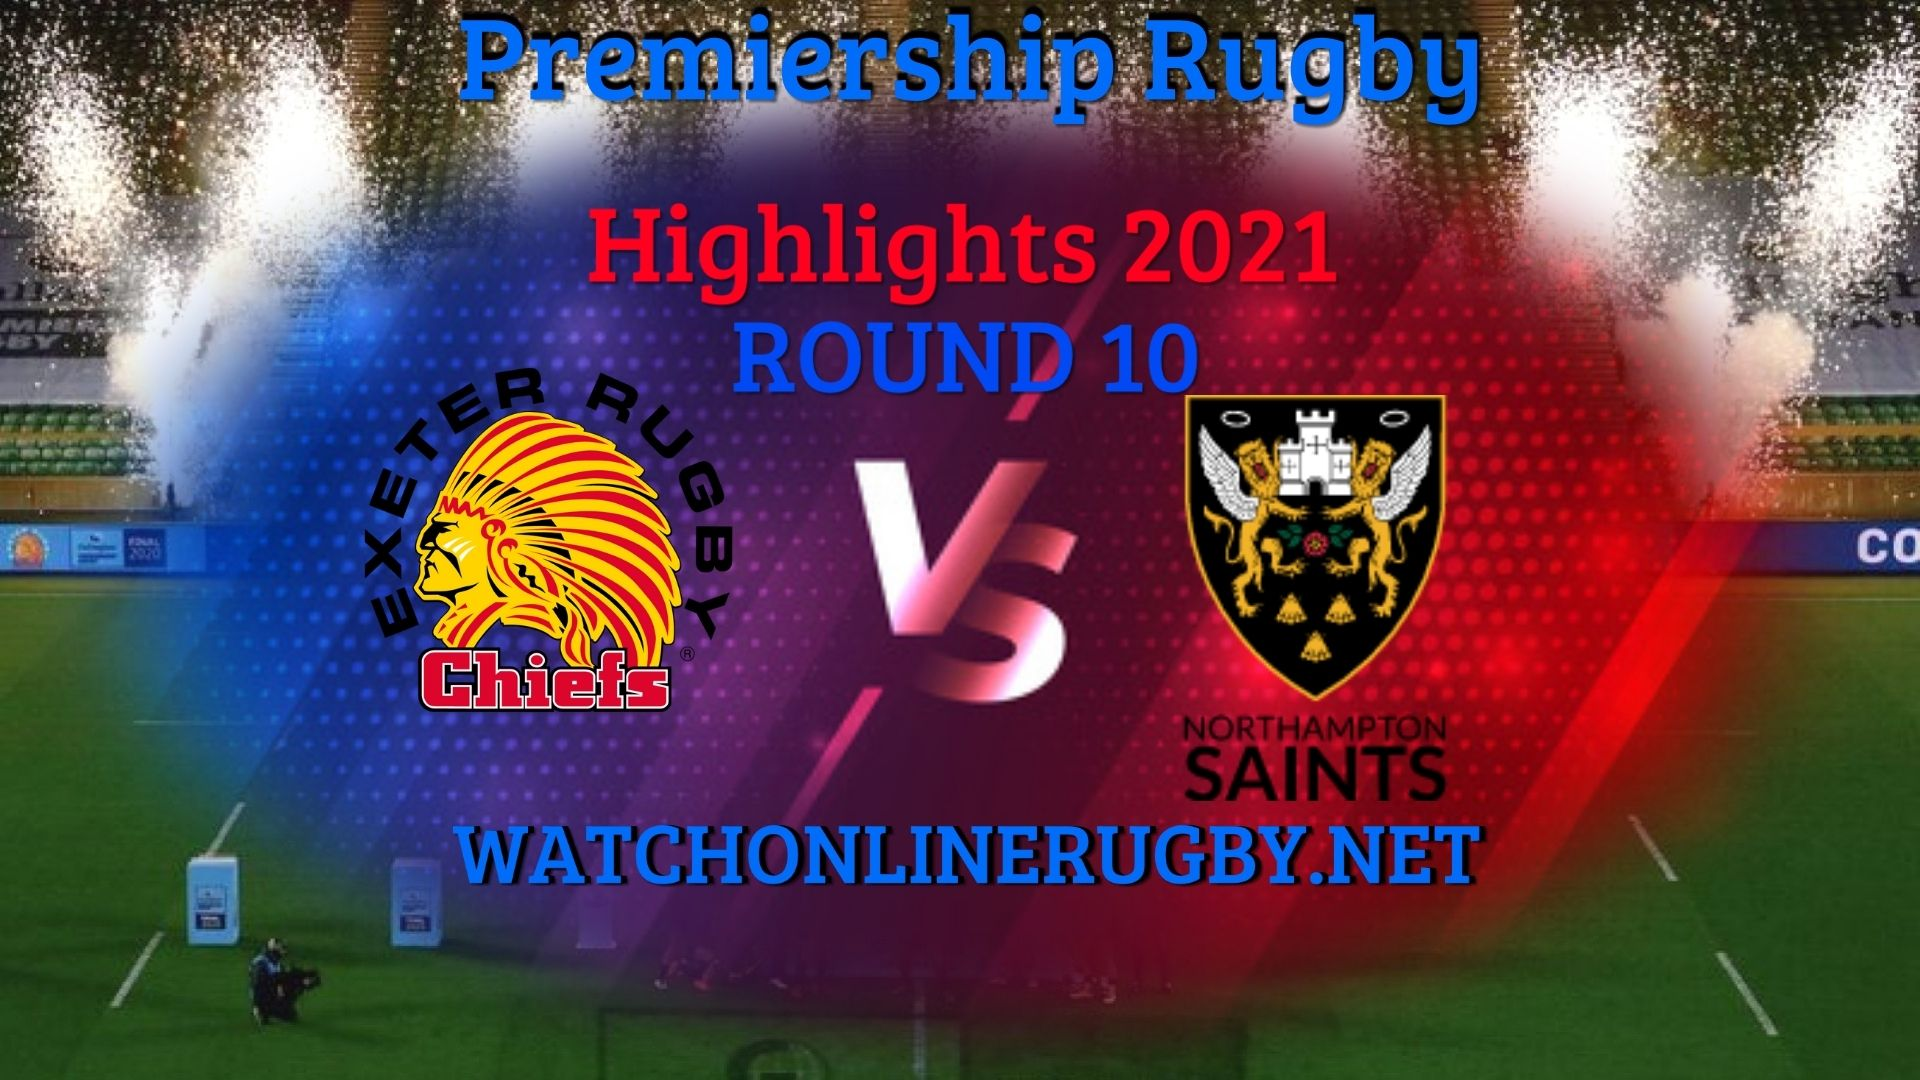 Exeter Chiefs Vs Northampton Saints Premiership Rugby 2021 RD 10